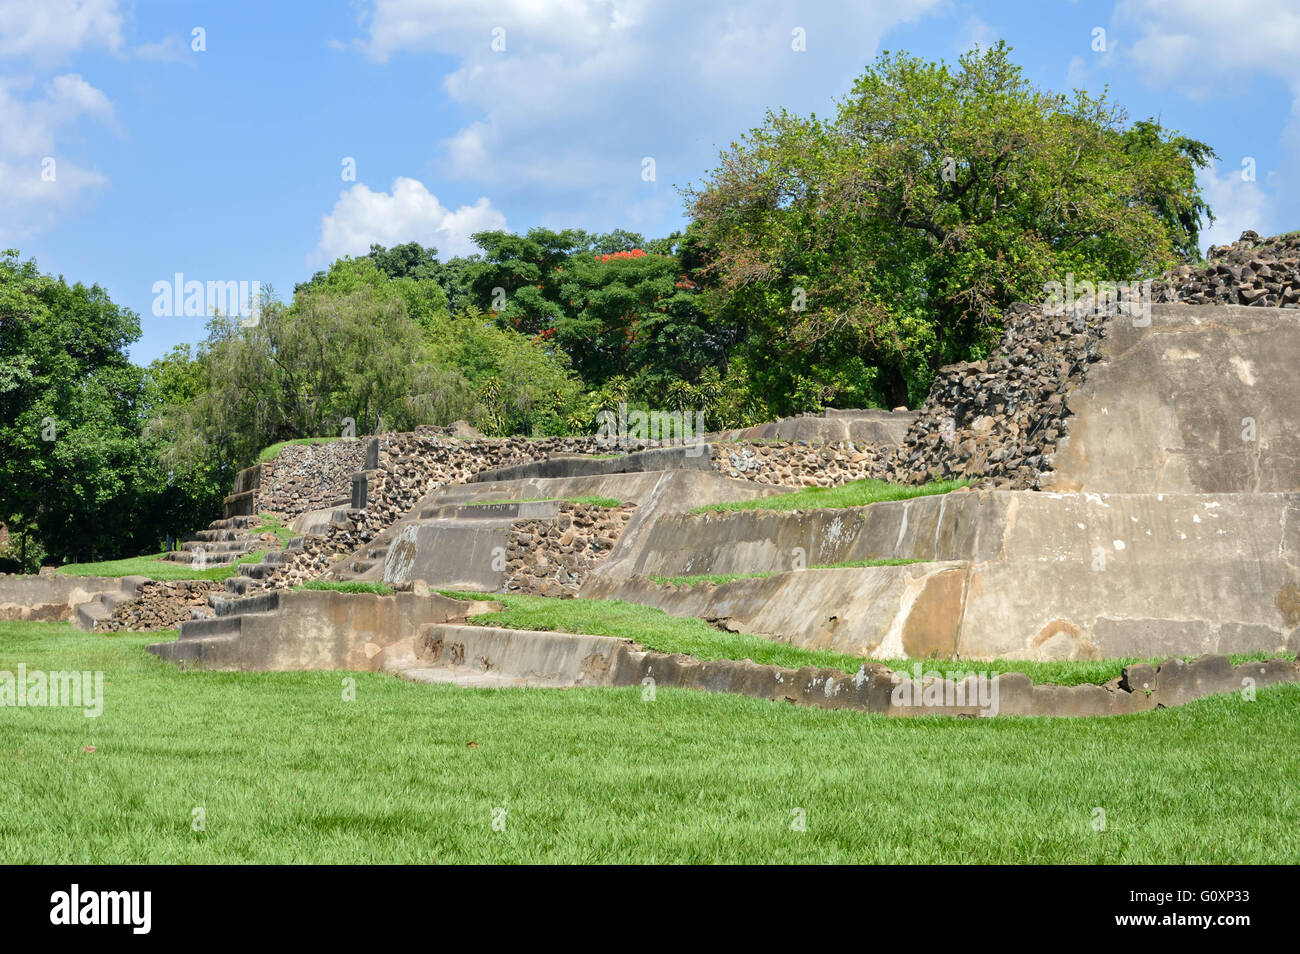 Tazumal archaeological site of Maya civilization in El Salvador - Stock Image